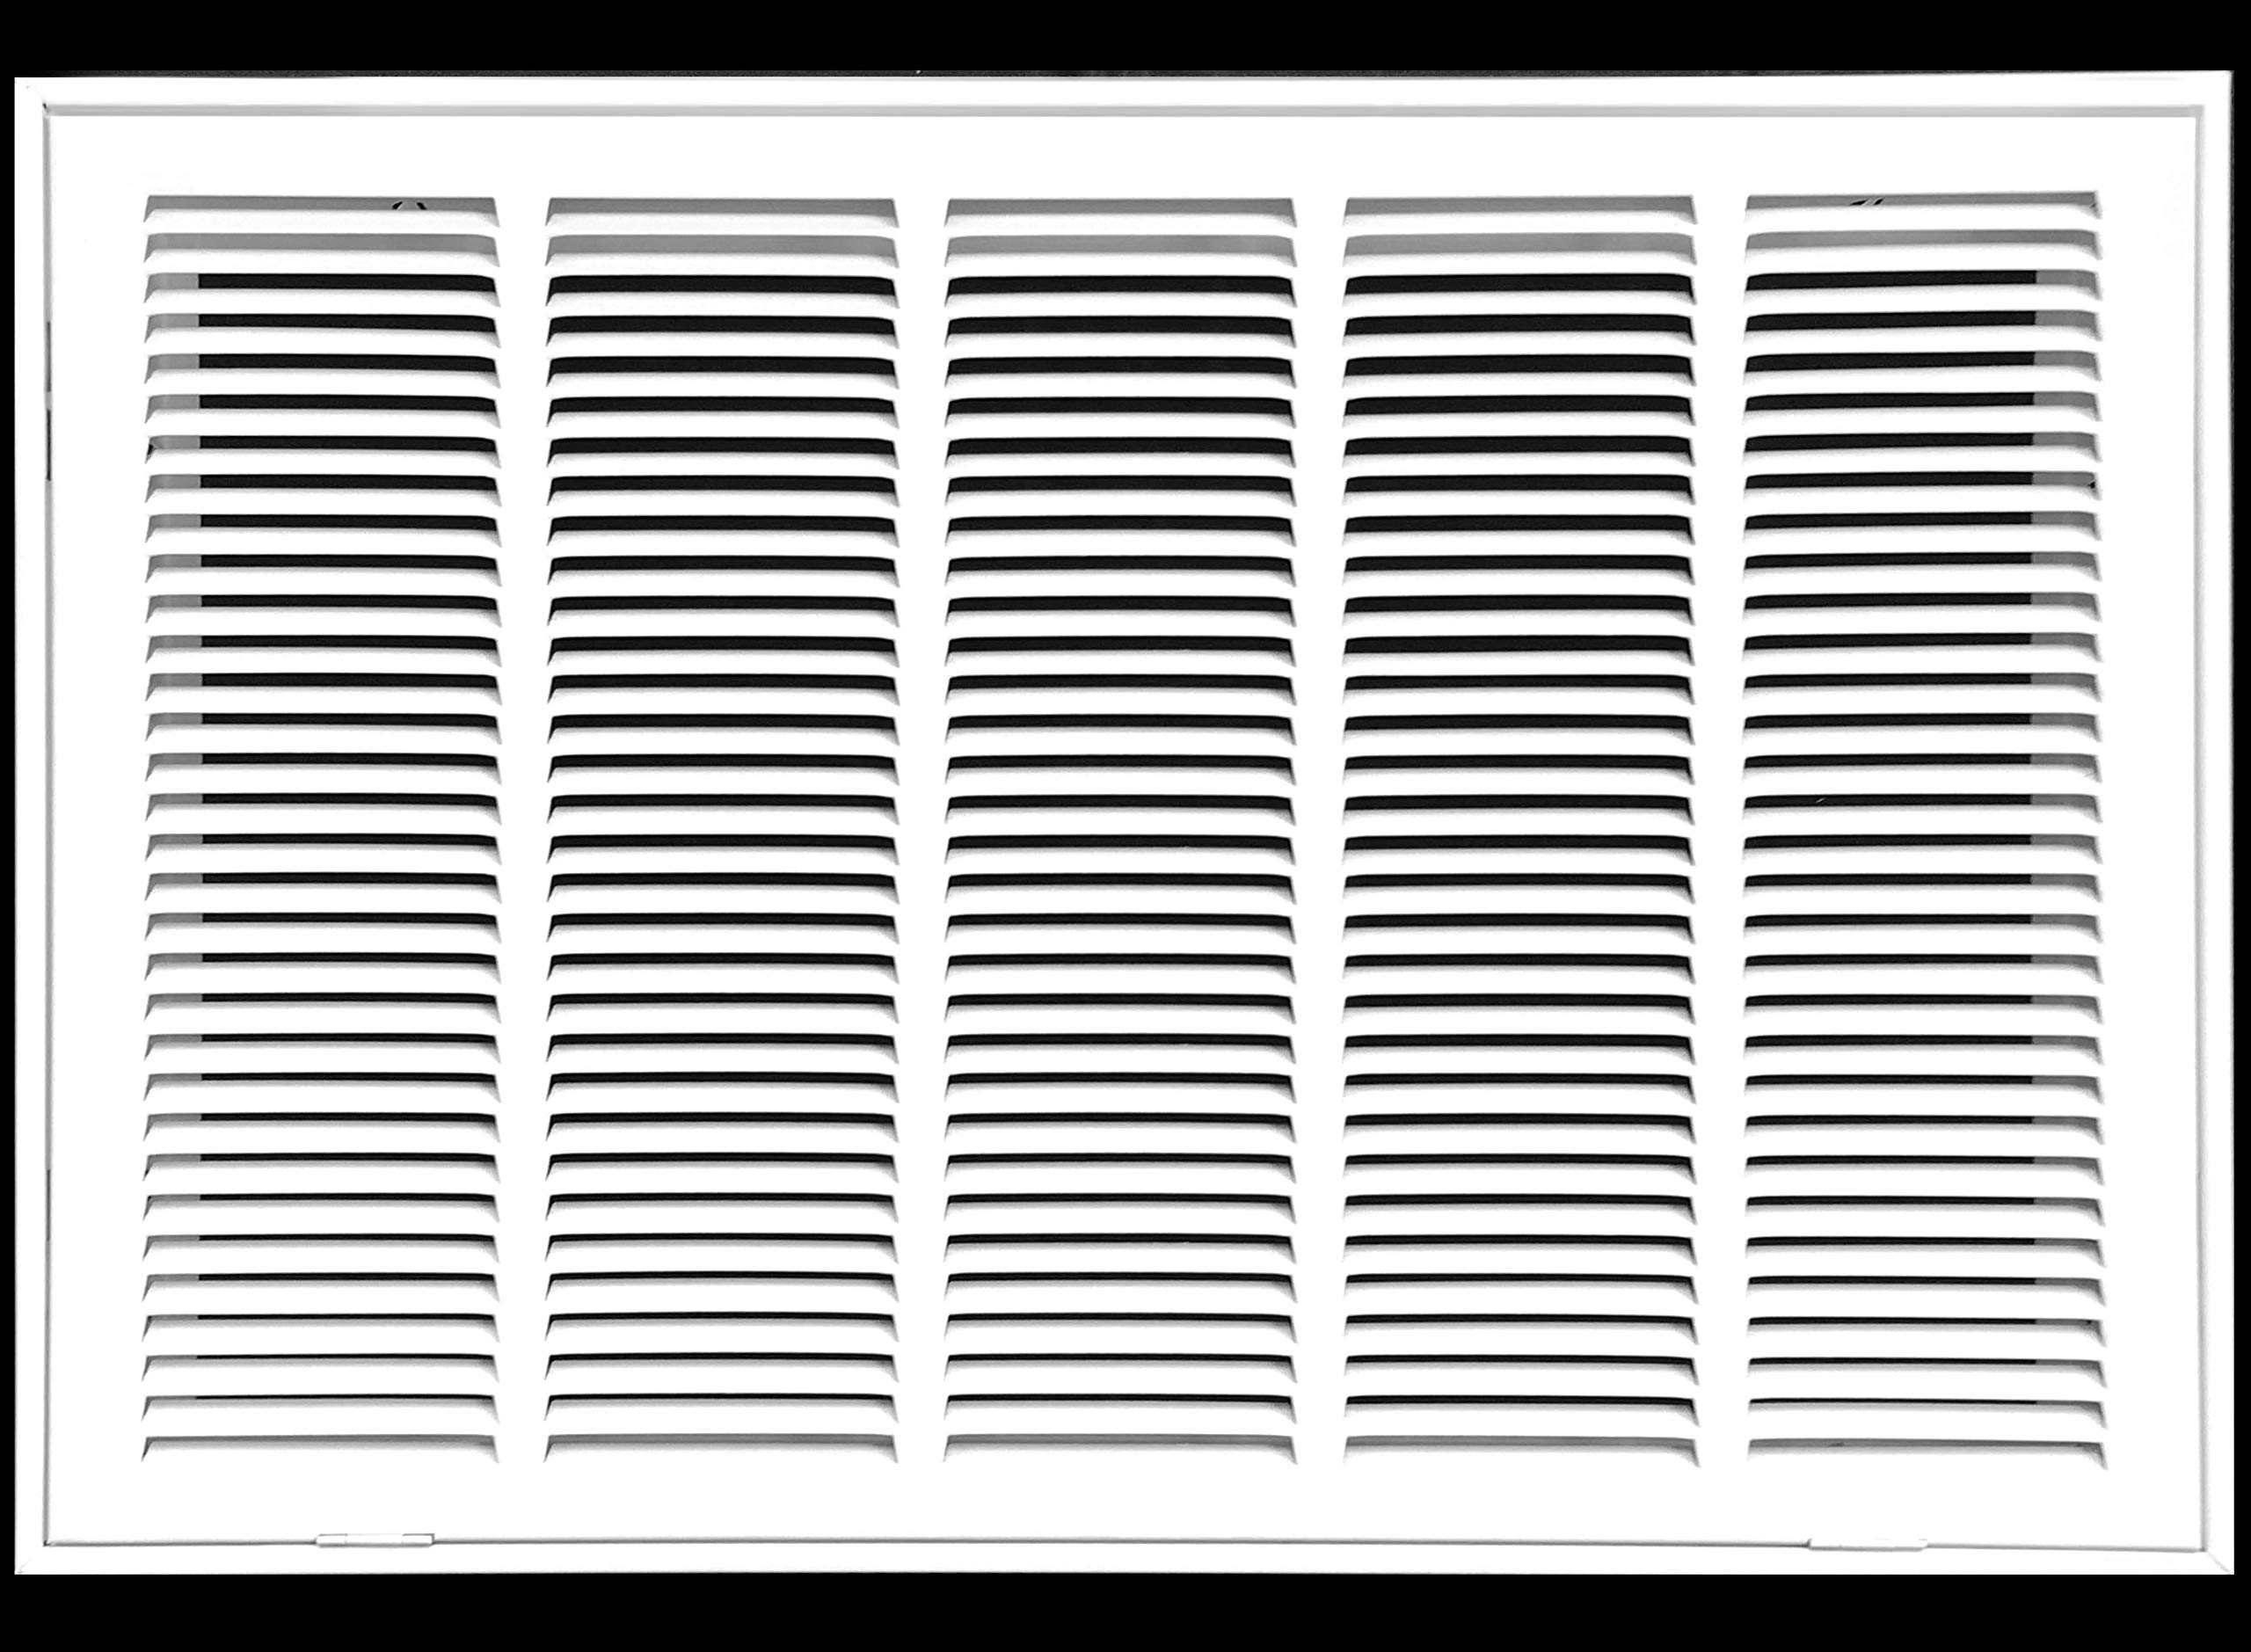 25'' X 14 Steel Return Air Filter Grille for 1'' Filter - Fixed Hinged - Ceiling Recommended - HVAC Duct Cover - Flat Stamped Face - White [Outer Dimensions: 27.5 X 15.75]